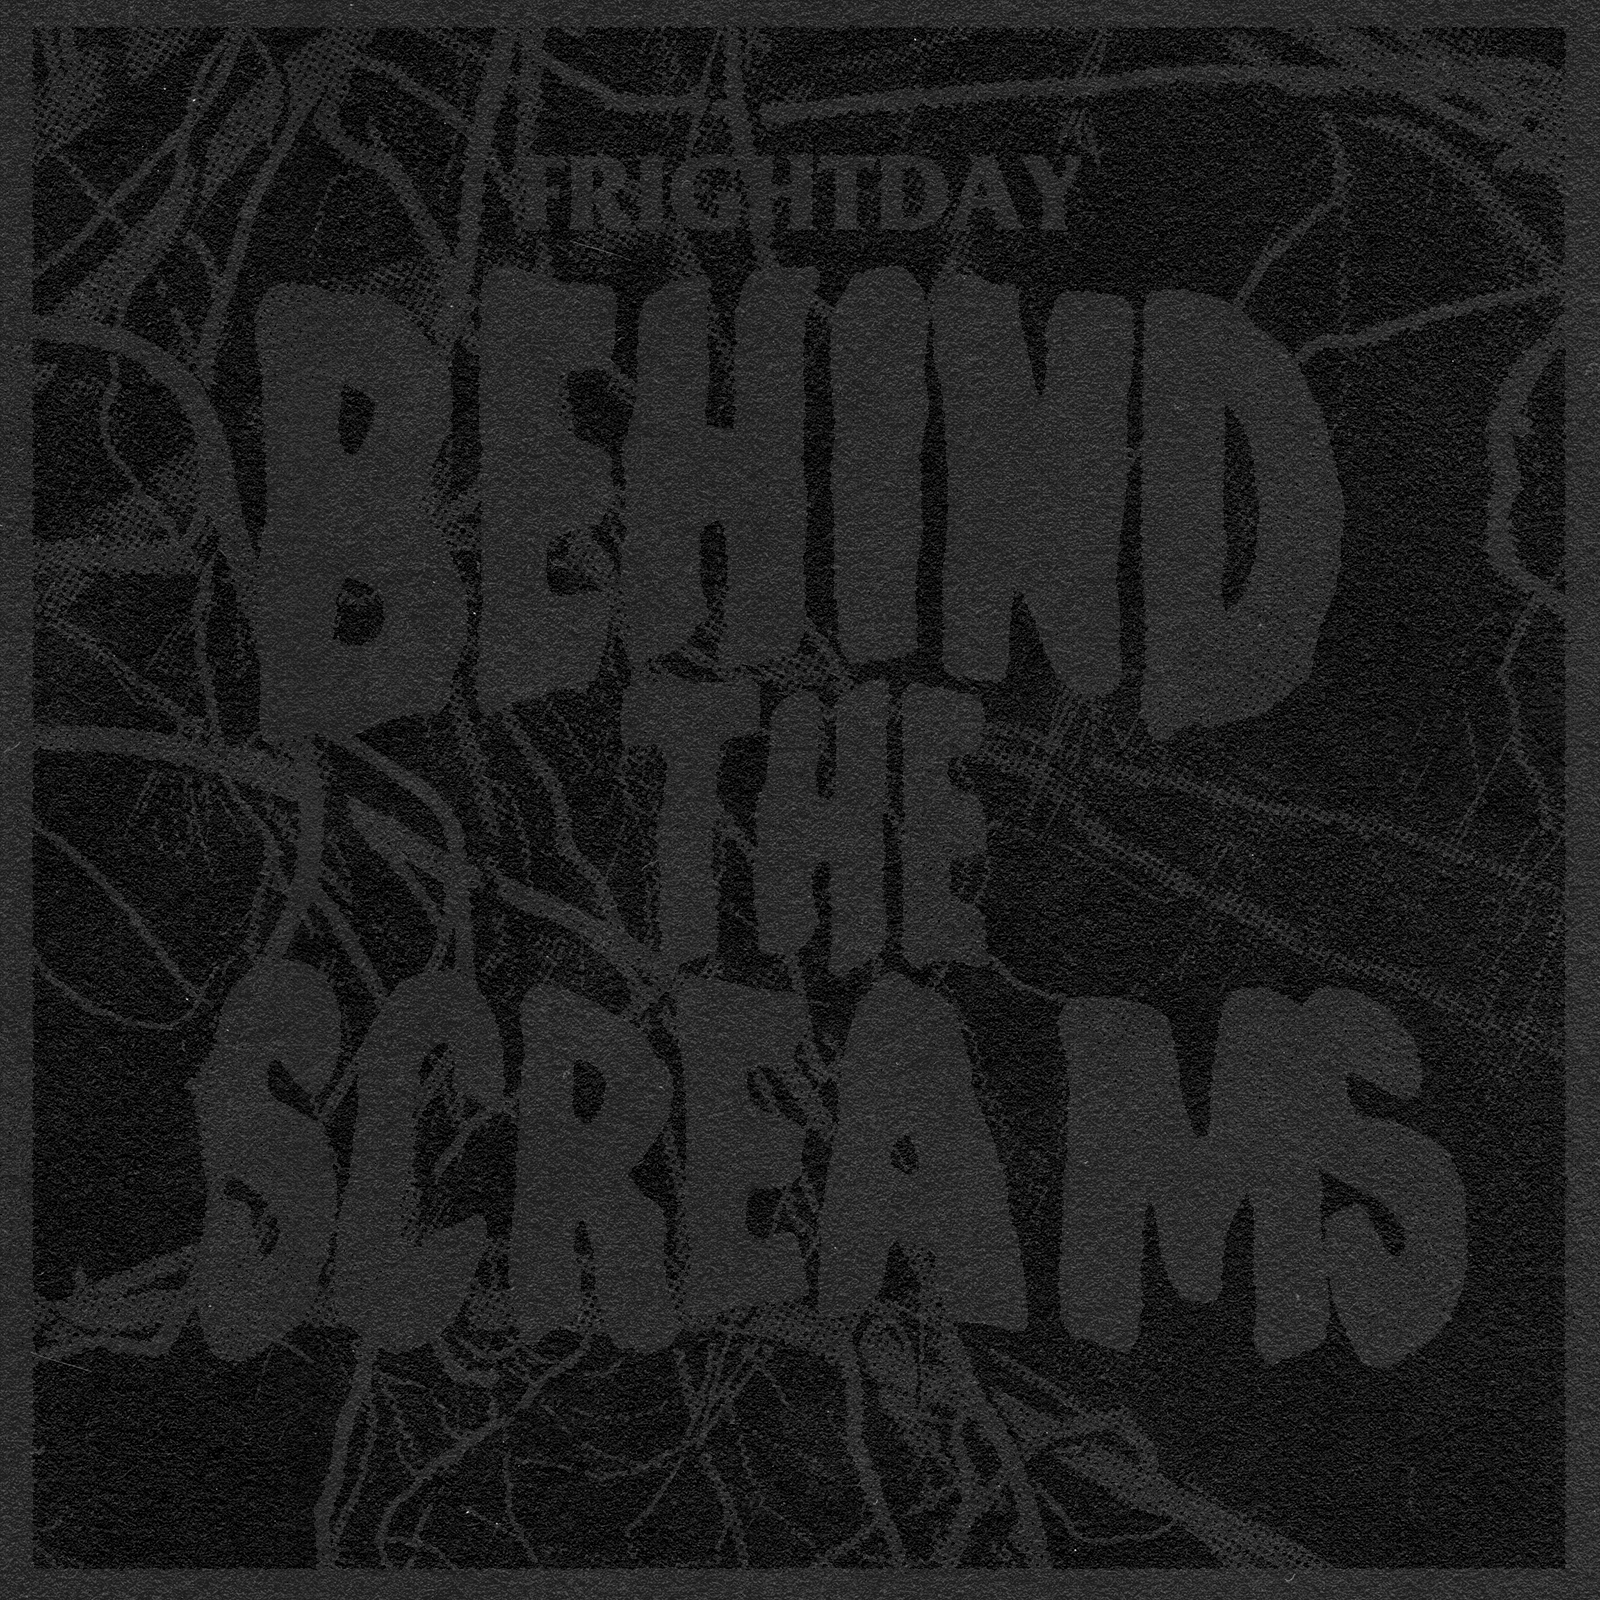 Behind the Screams: Dr. Sam (Semir Osmanagić) (Excerpt)